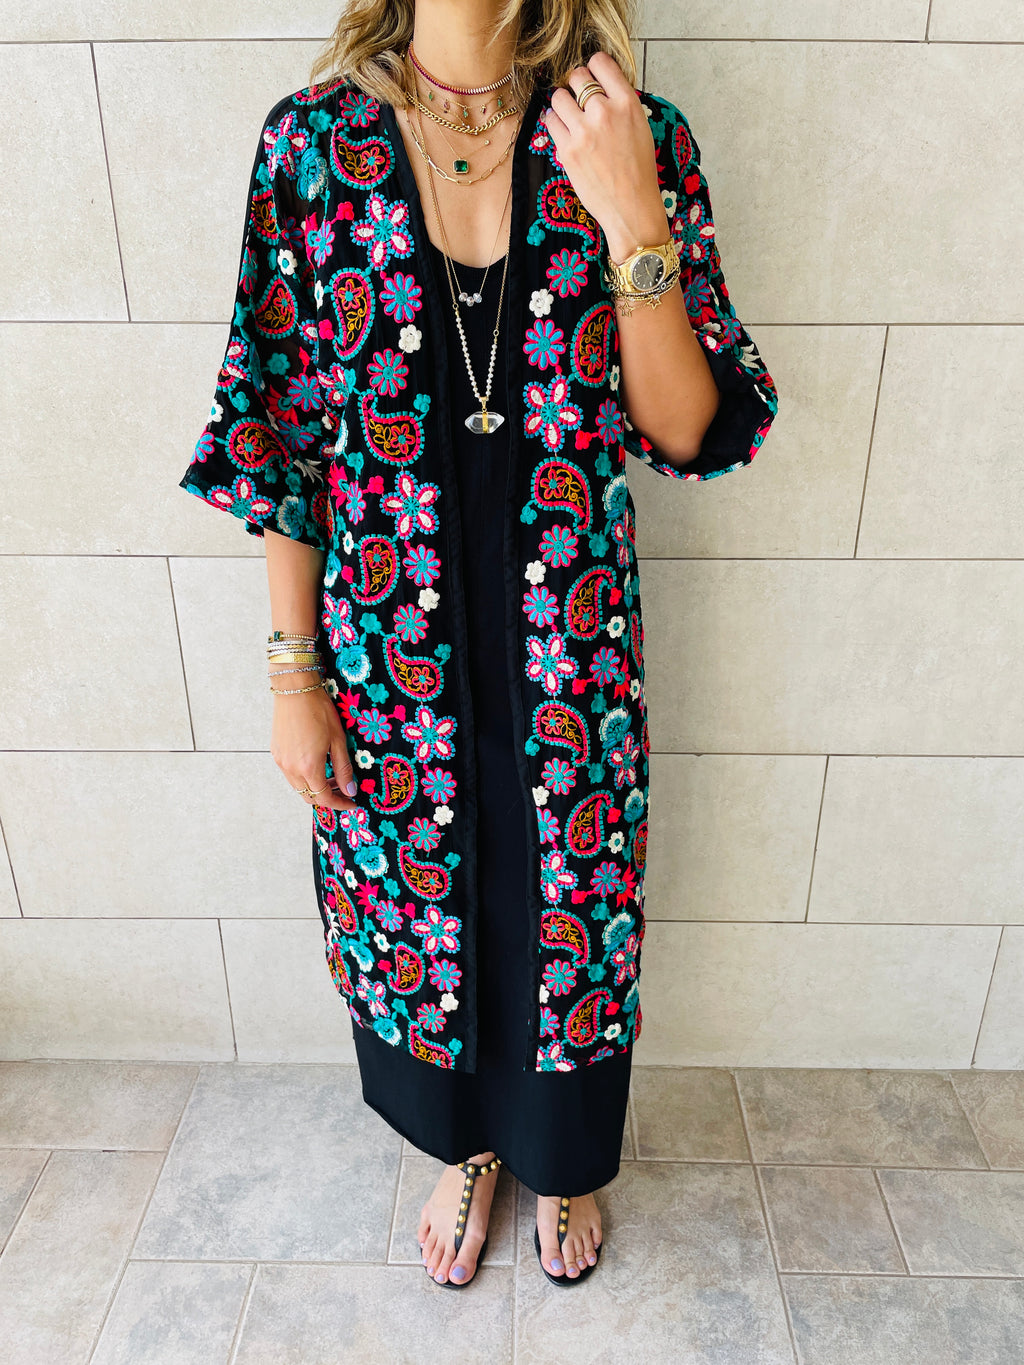 The Paisley Embellished Royal Kimono